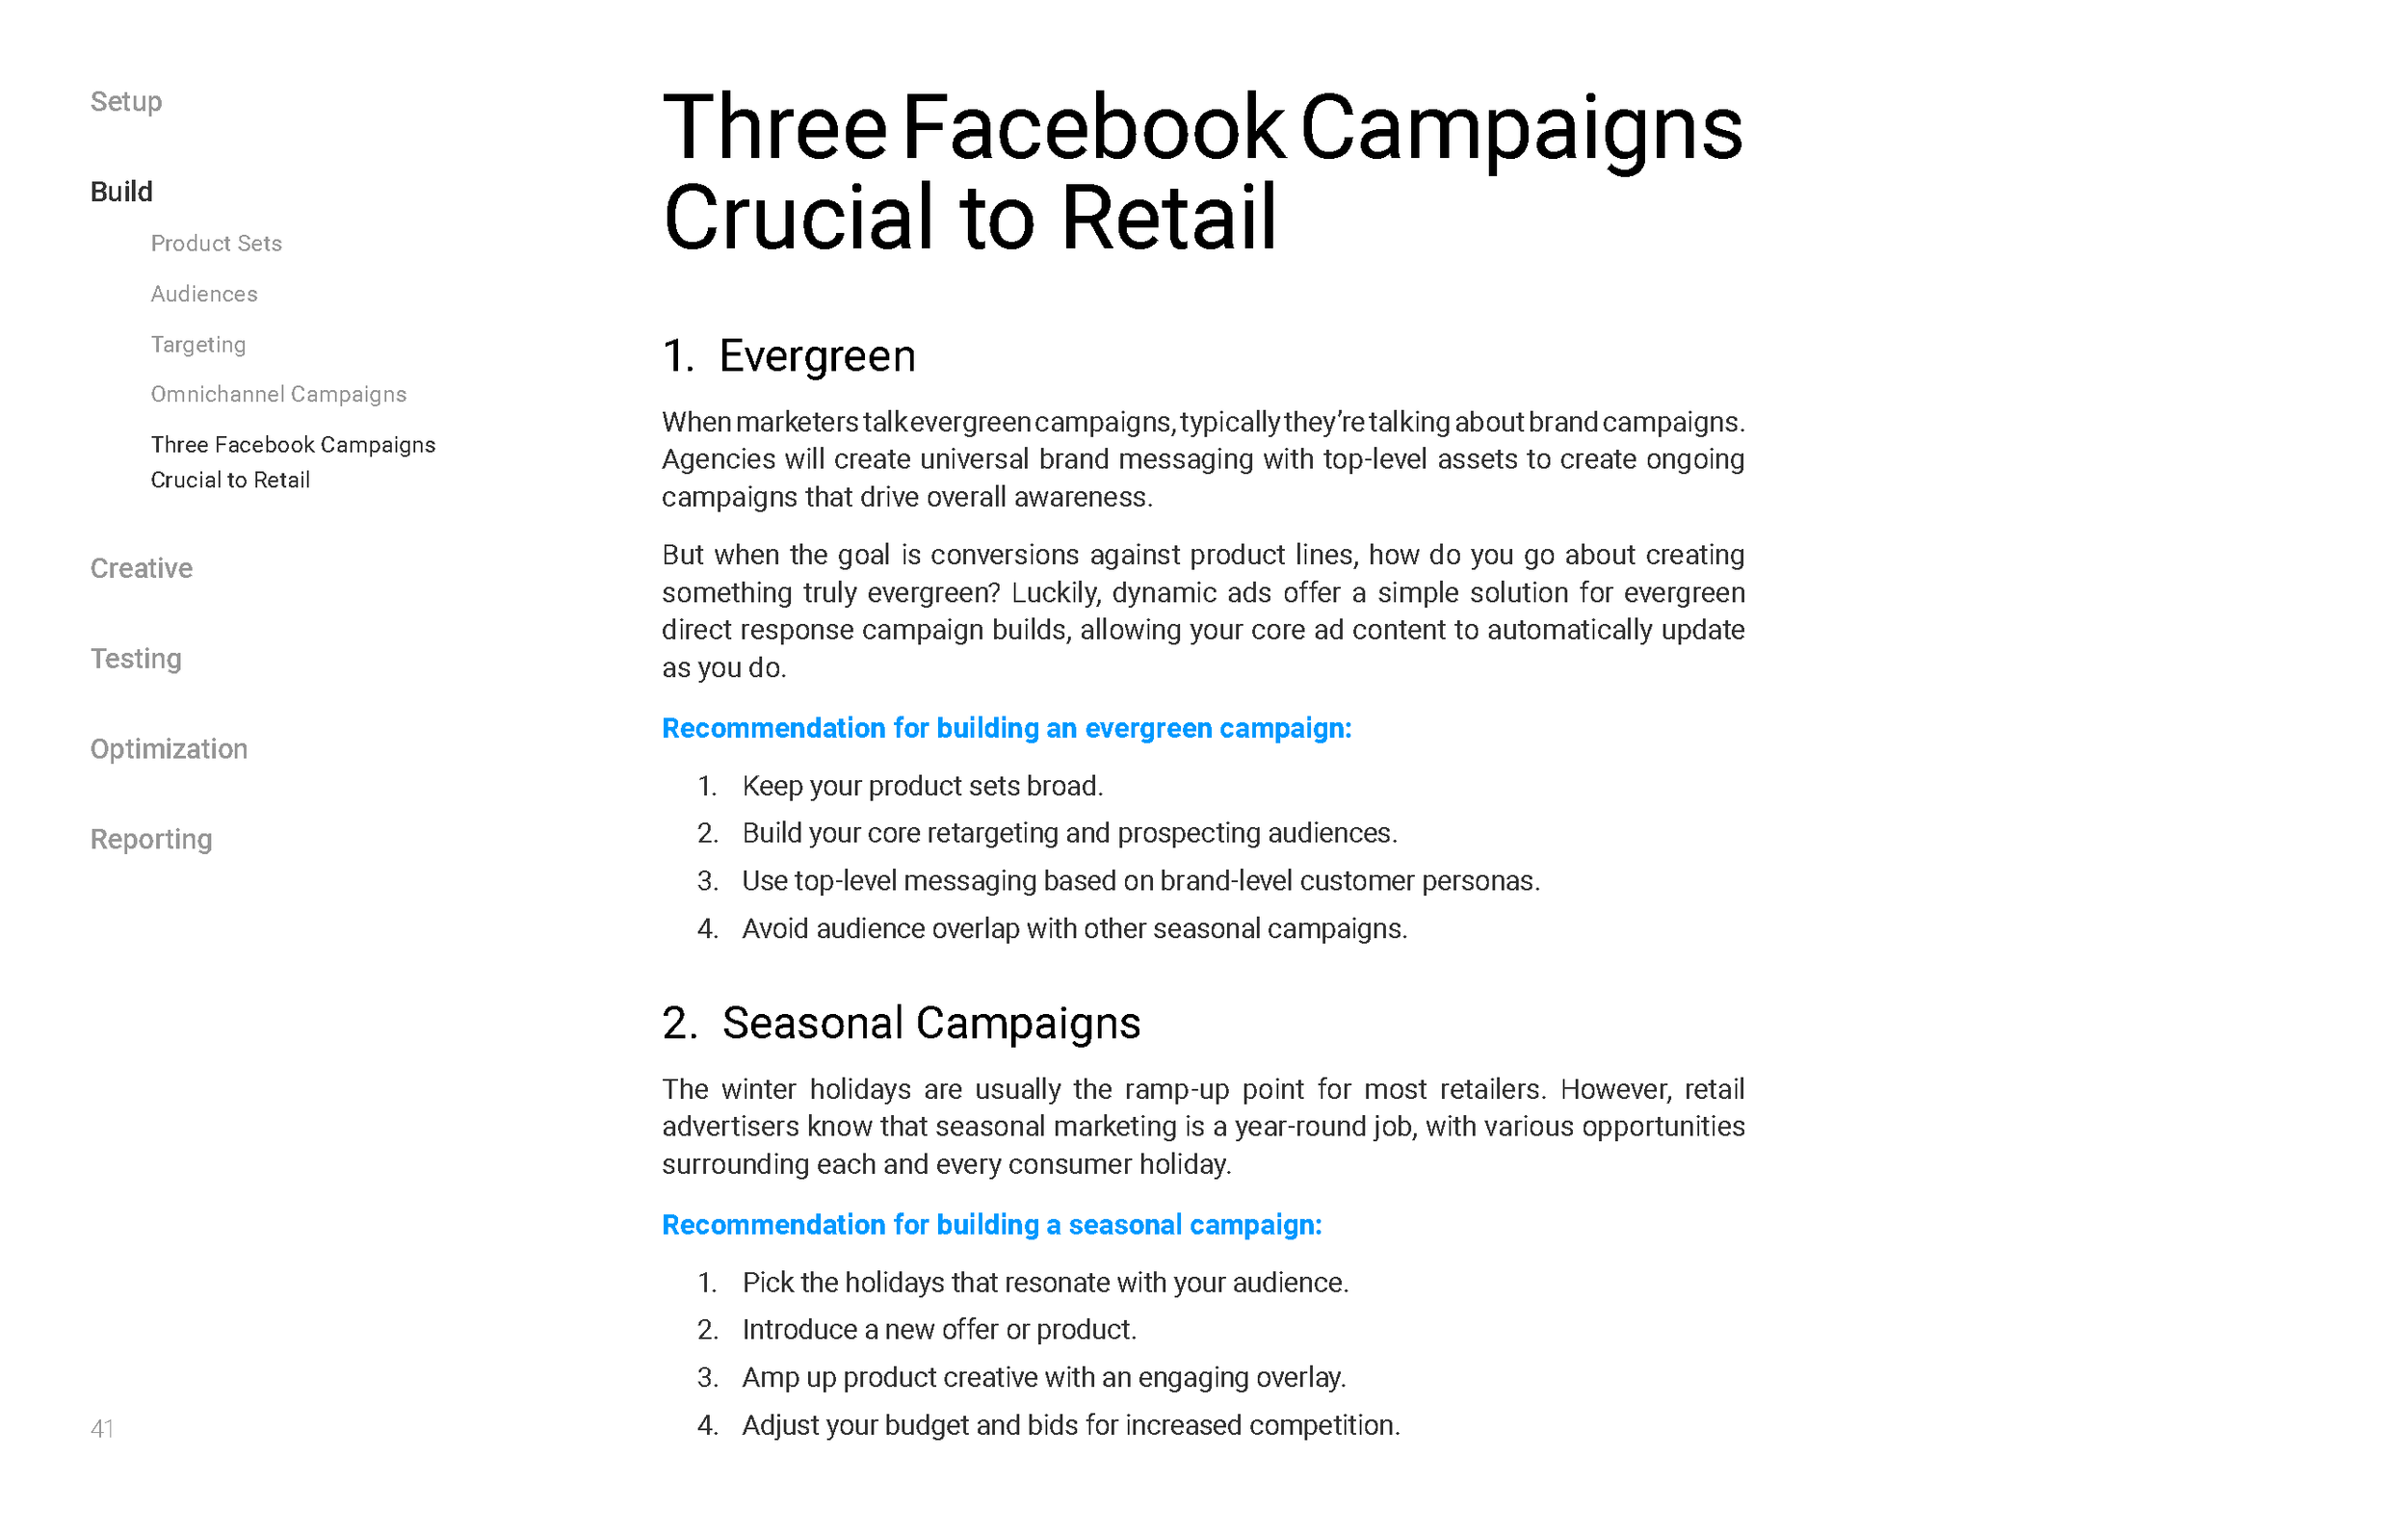 retail playbook _Page_041.png